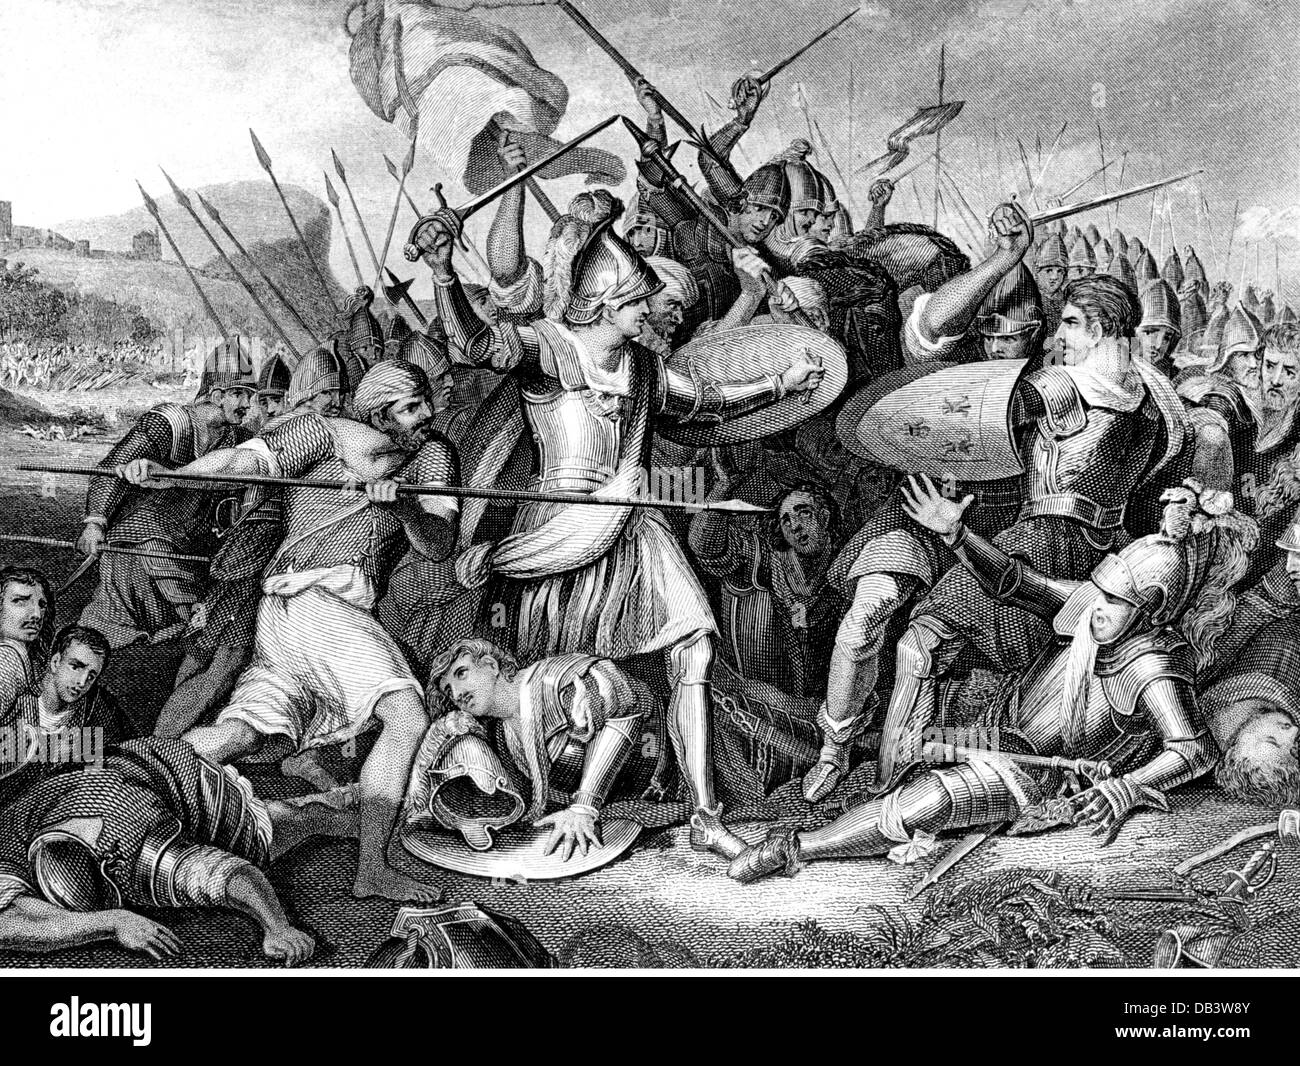 evnets, Hundred Years' War, Battle of Agincourt, 25.10.1415, Additional-Rights-Clearences-NA - Stock Image